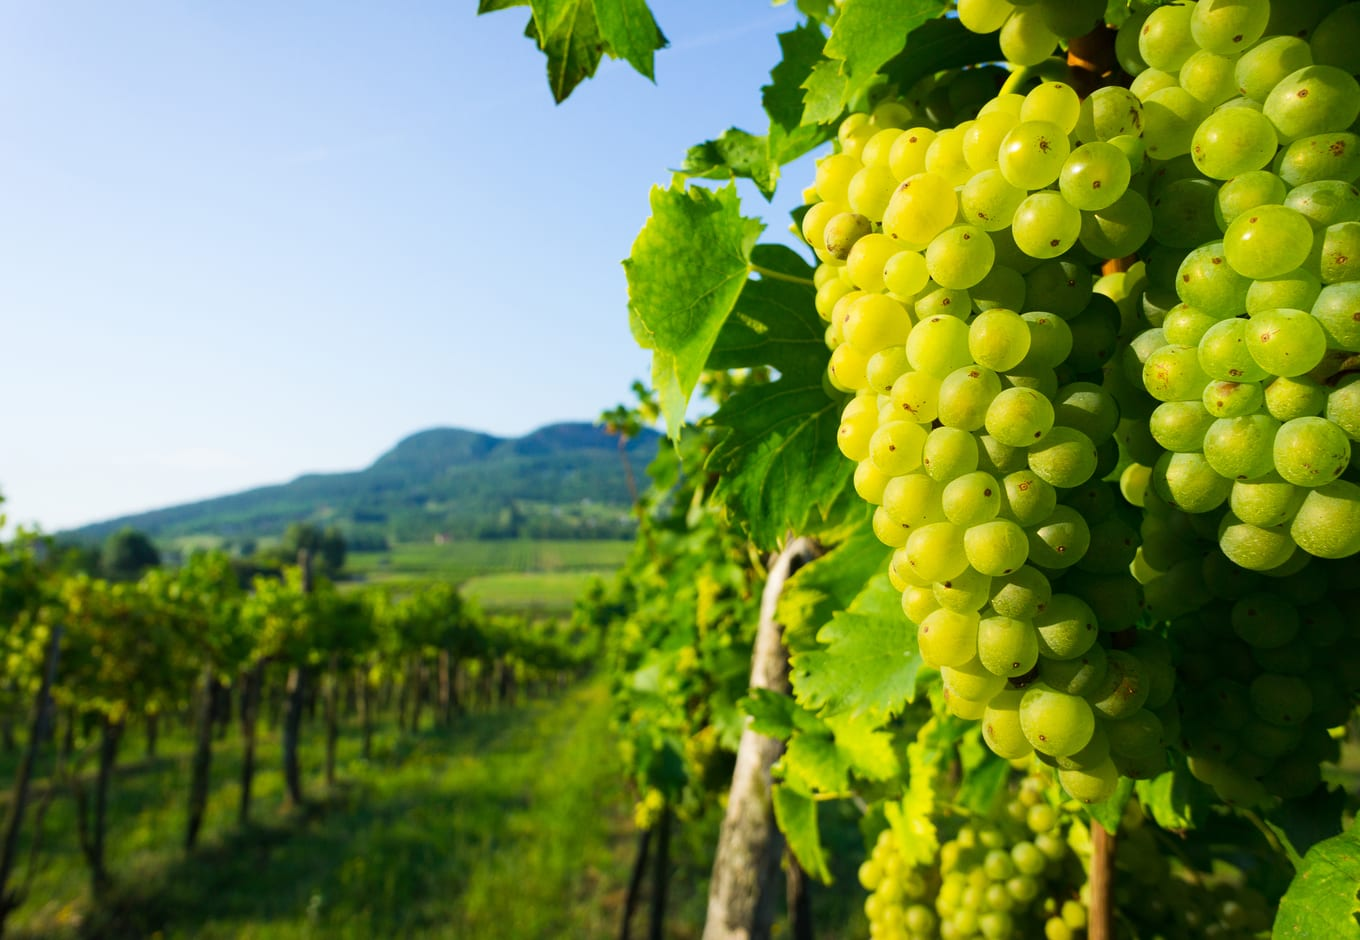 Wine grapes in vineyard close to Badacsony hill, in Hungary